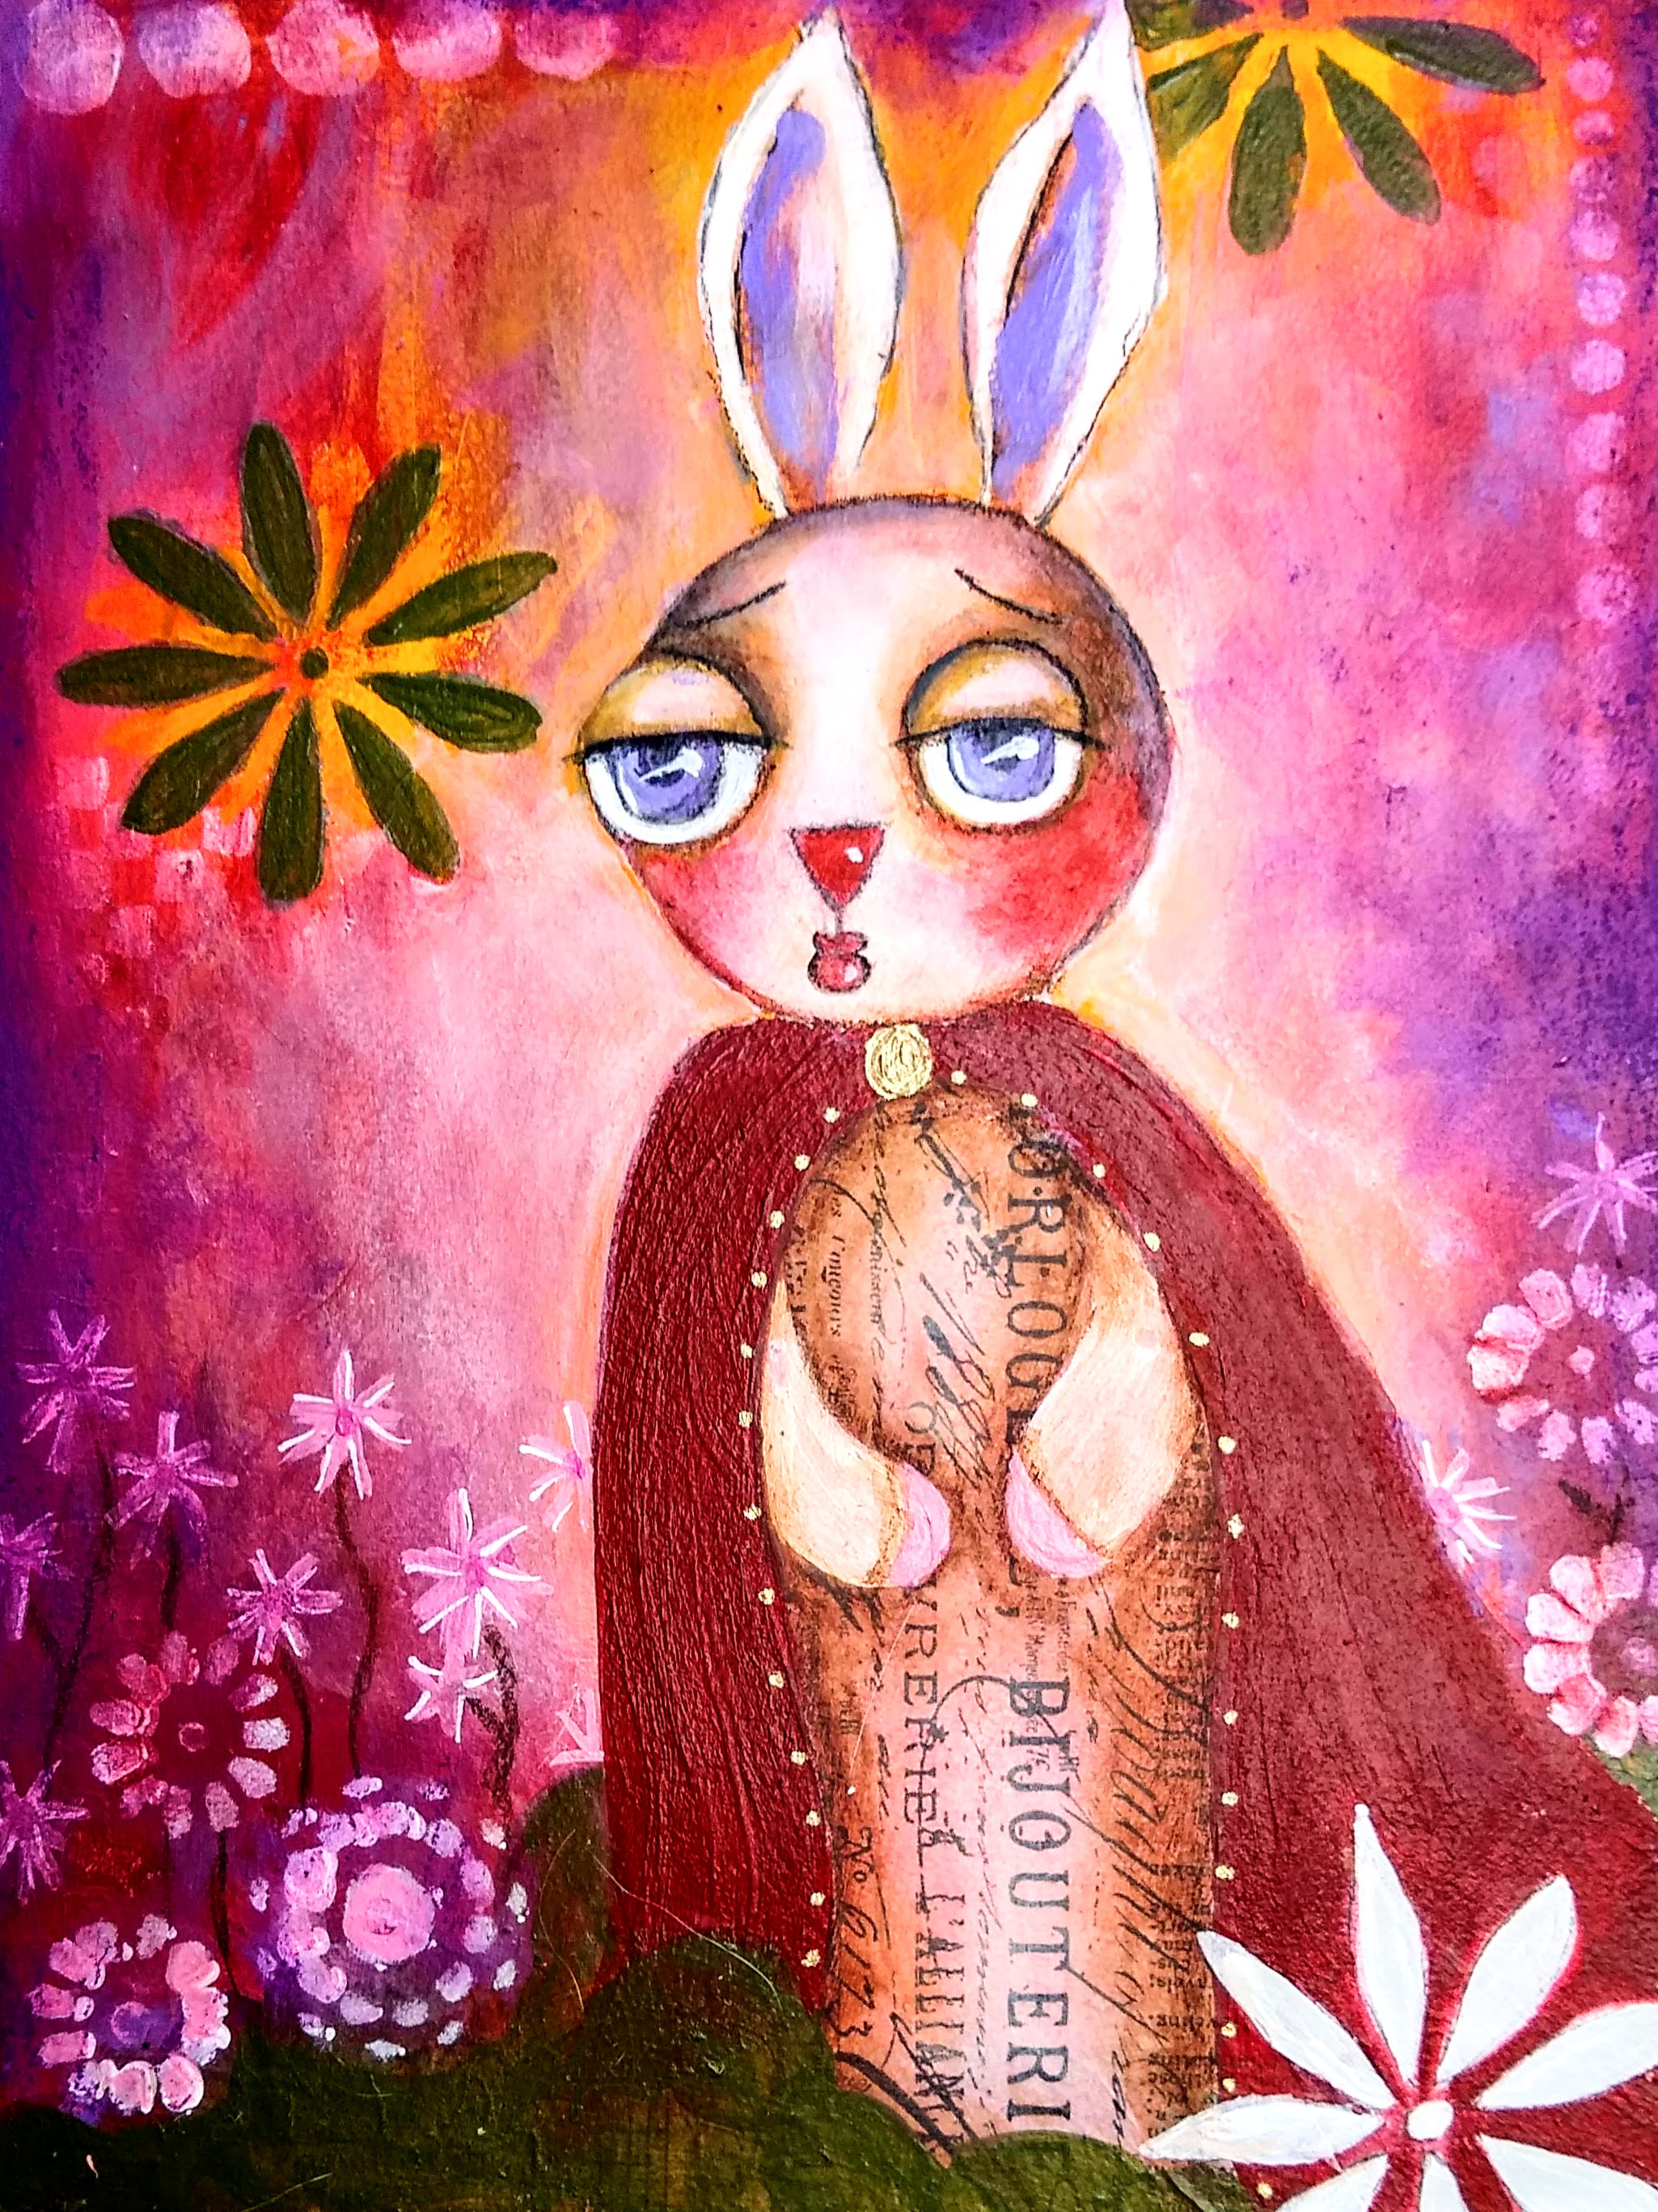 The Royal Bunny